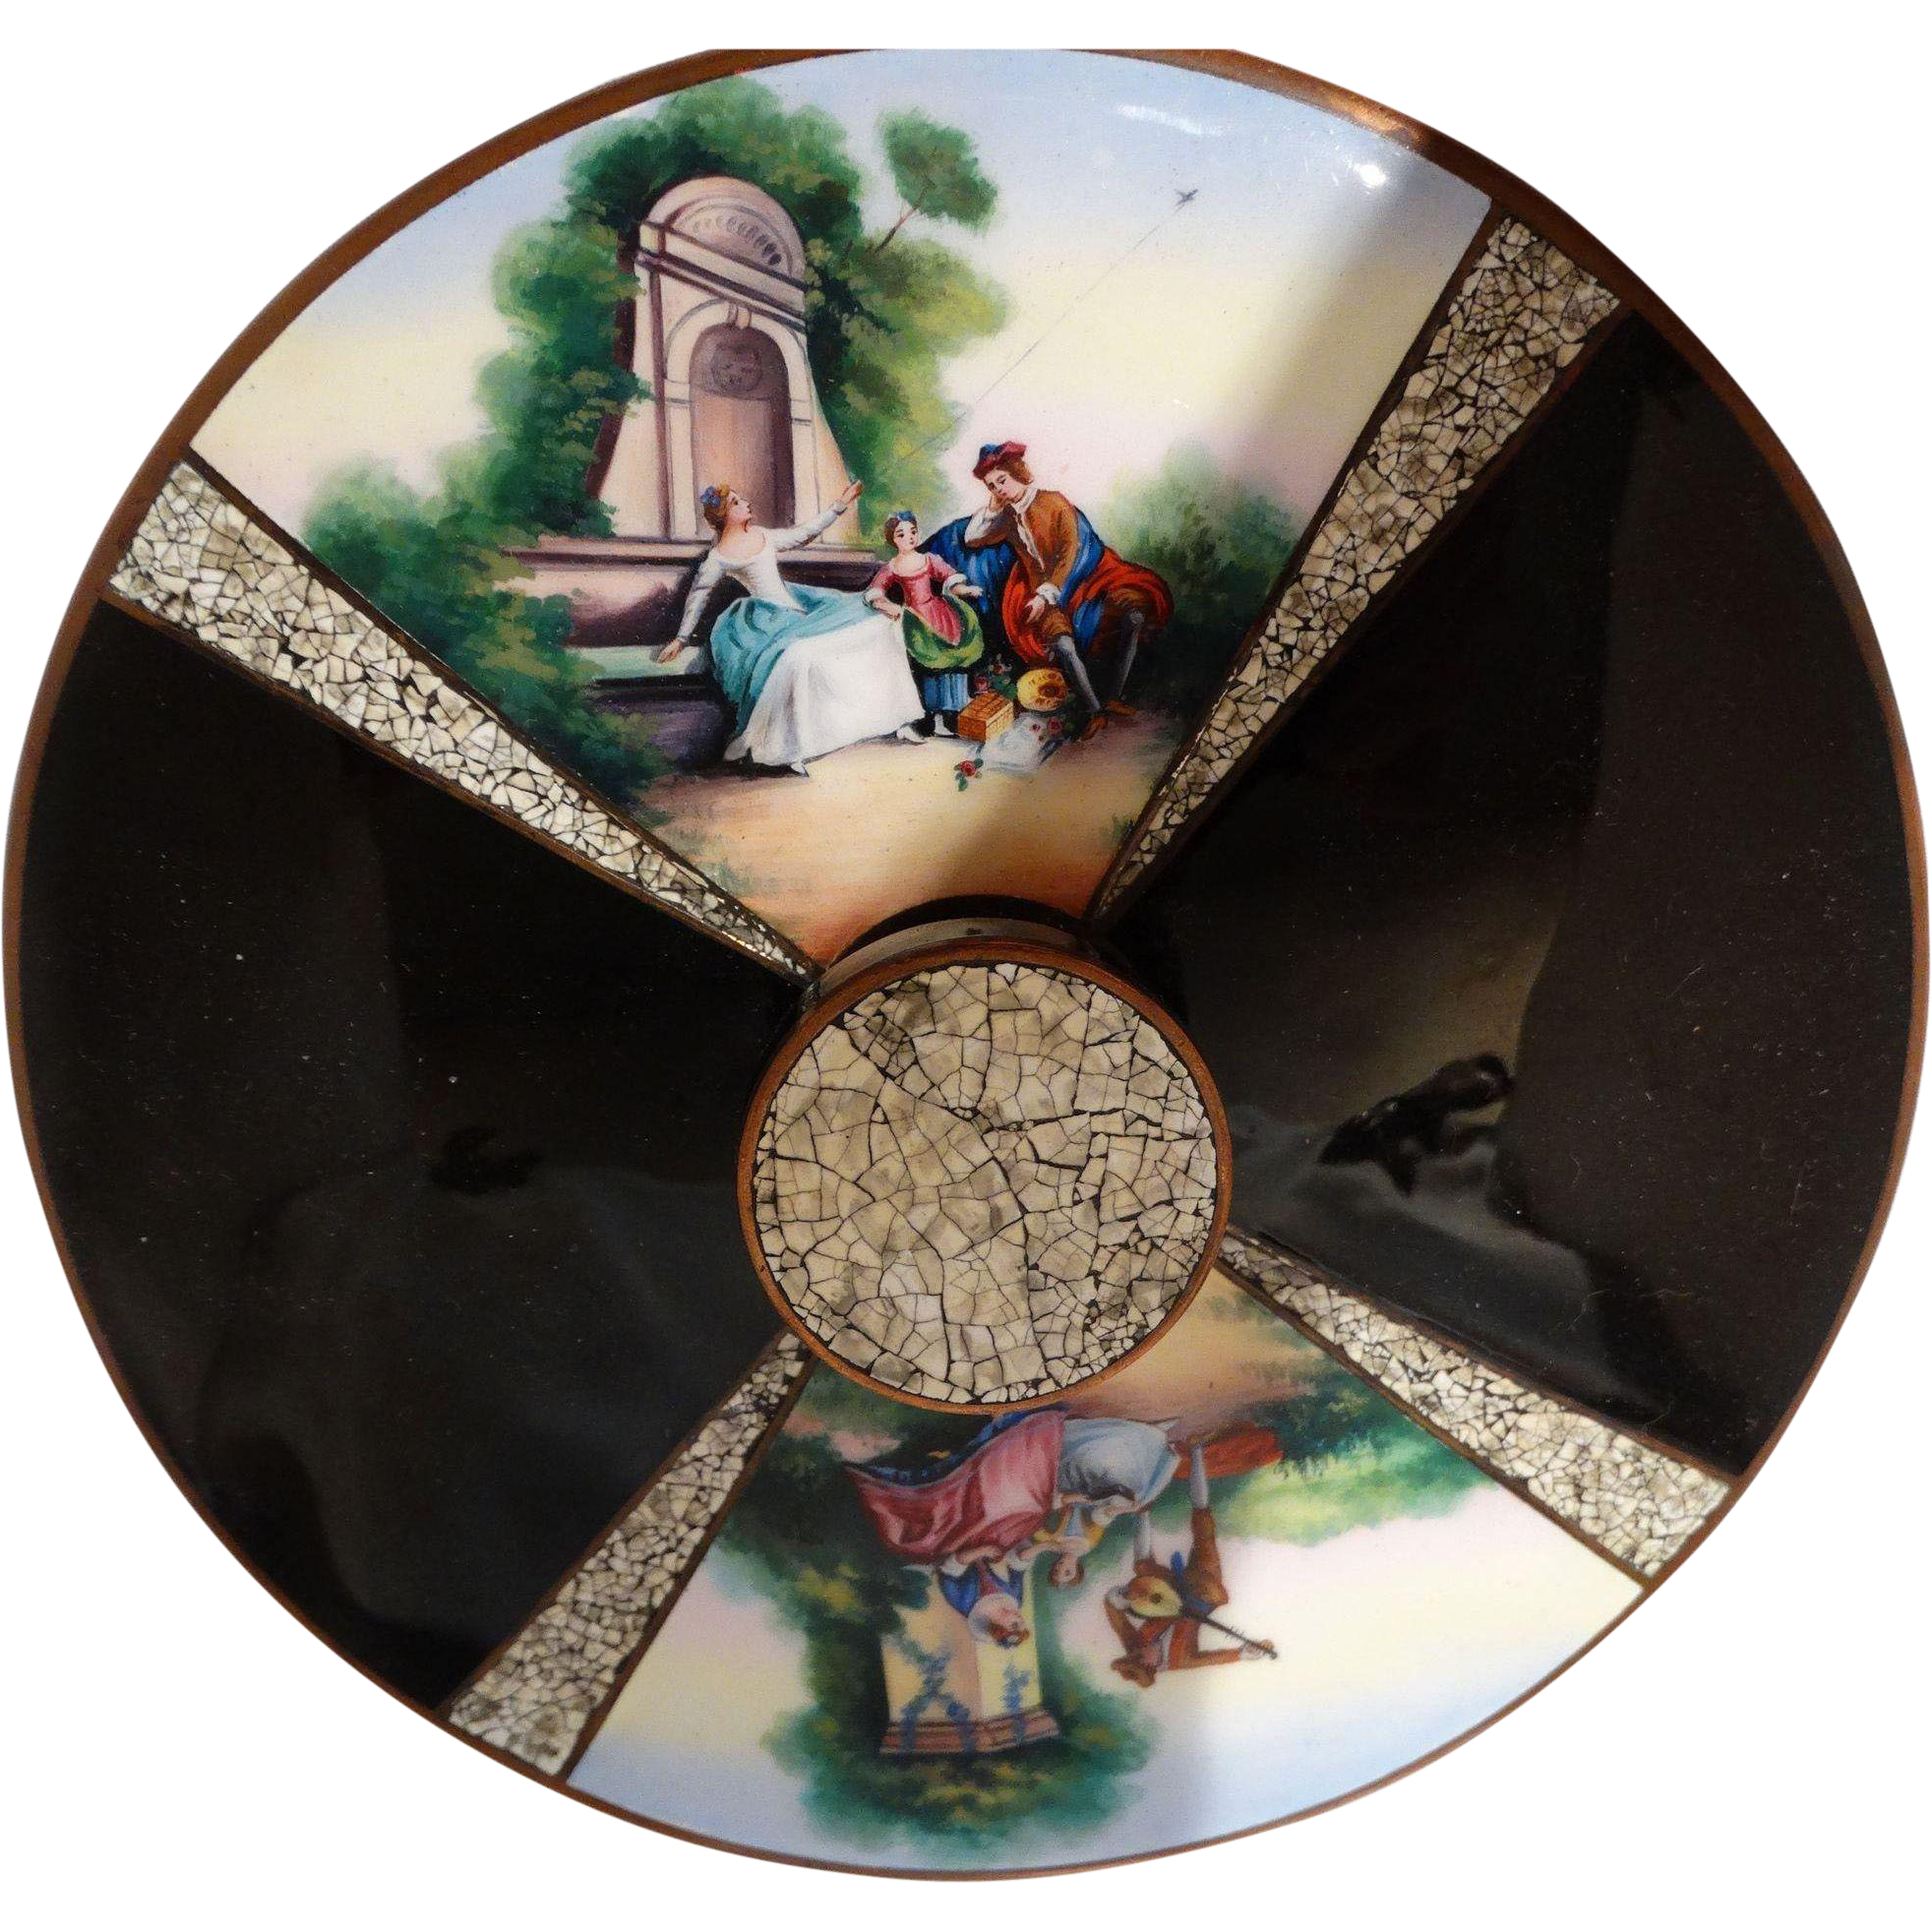 Exquisite Antique Boudoir Mirror With Enamel Scenes Divided By Very Rare Eggshell Enamel